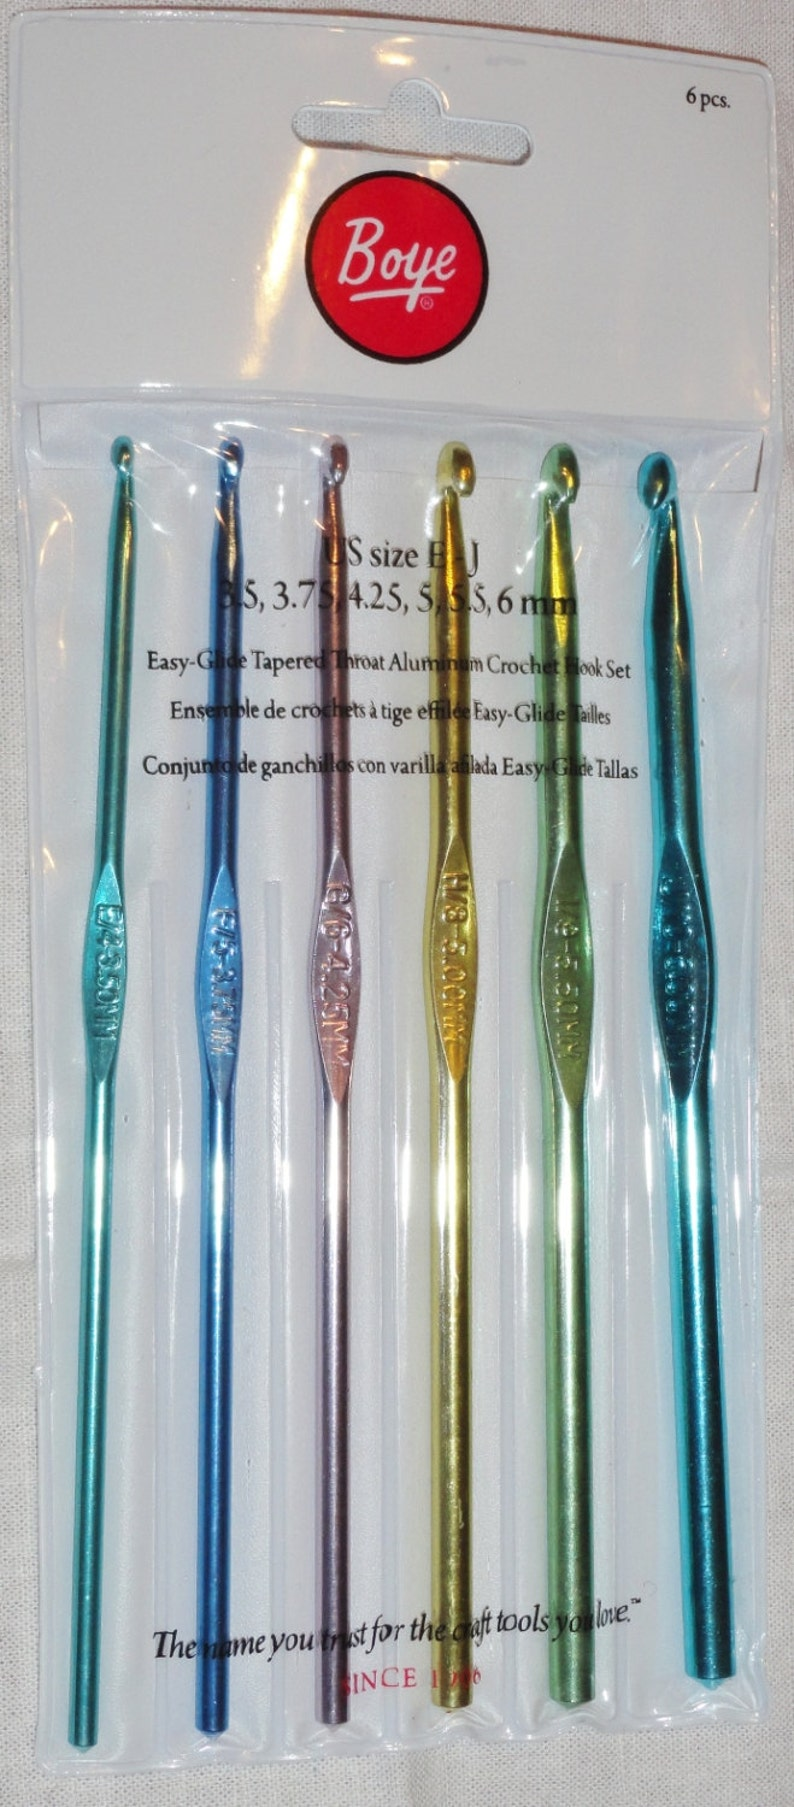 Crochet Hook Set Of 6 Sizes E J 35 60 Mm Boye Easy Glide Etsy